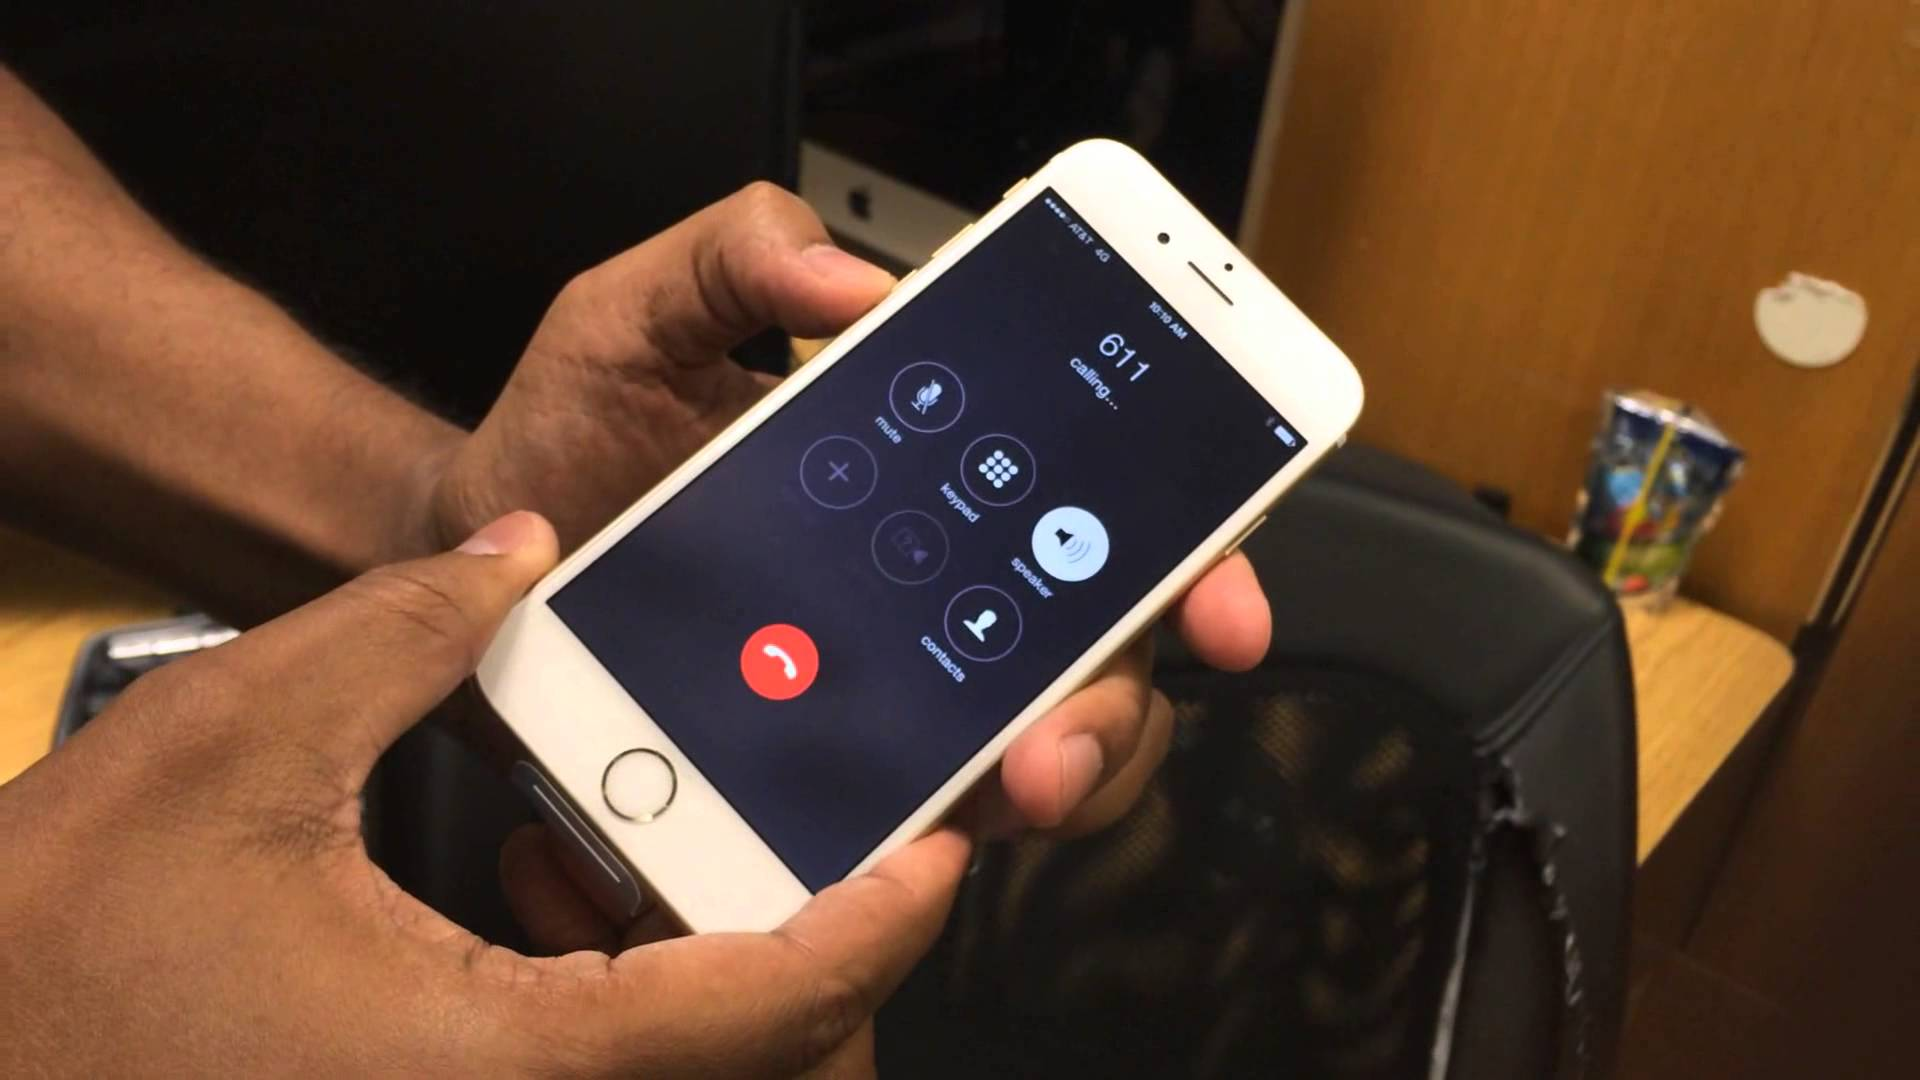 How to get unlock codes for the iPhone 6? – Tech News 2Day